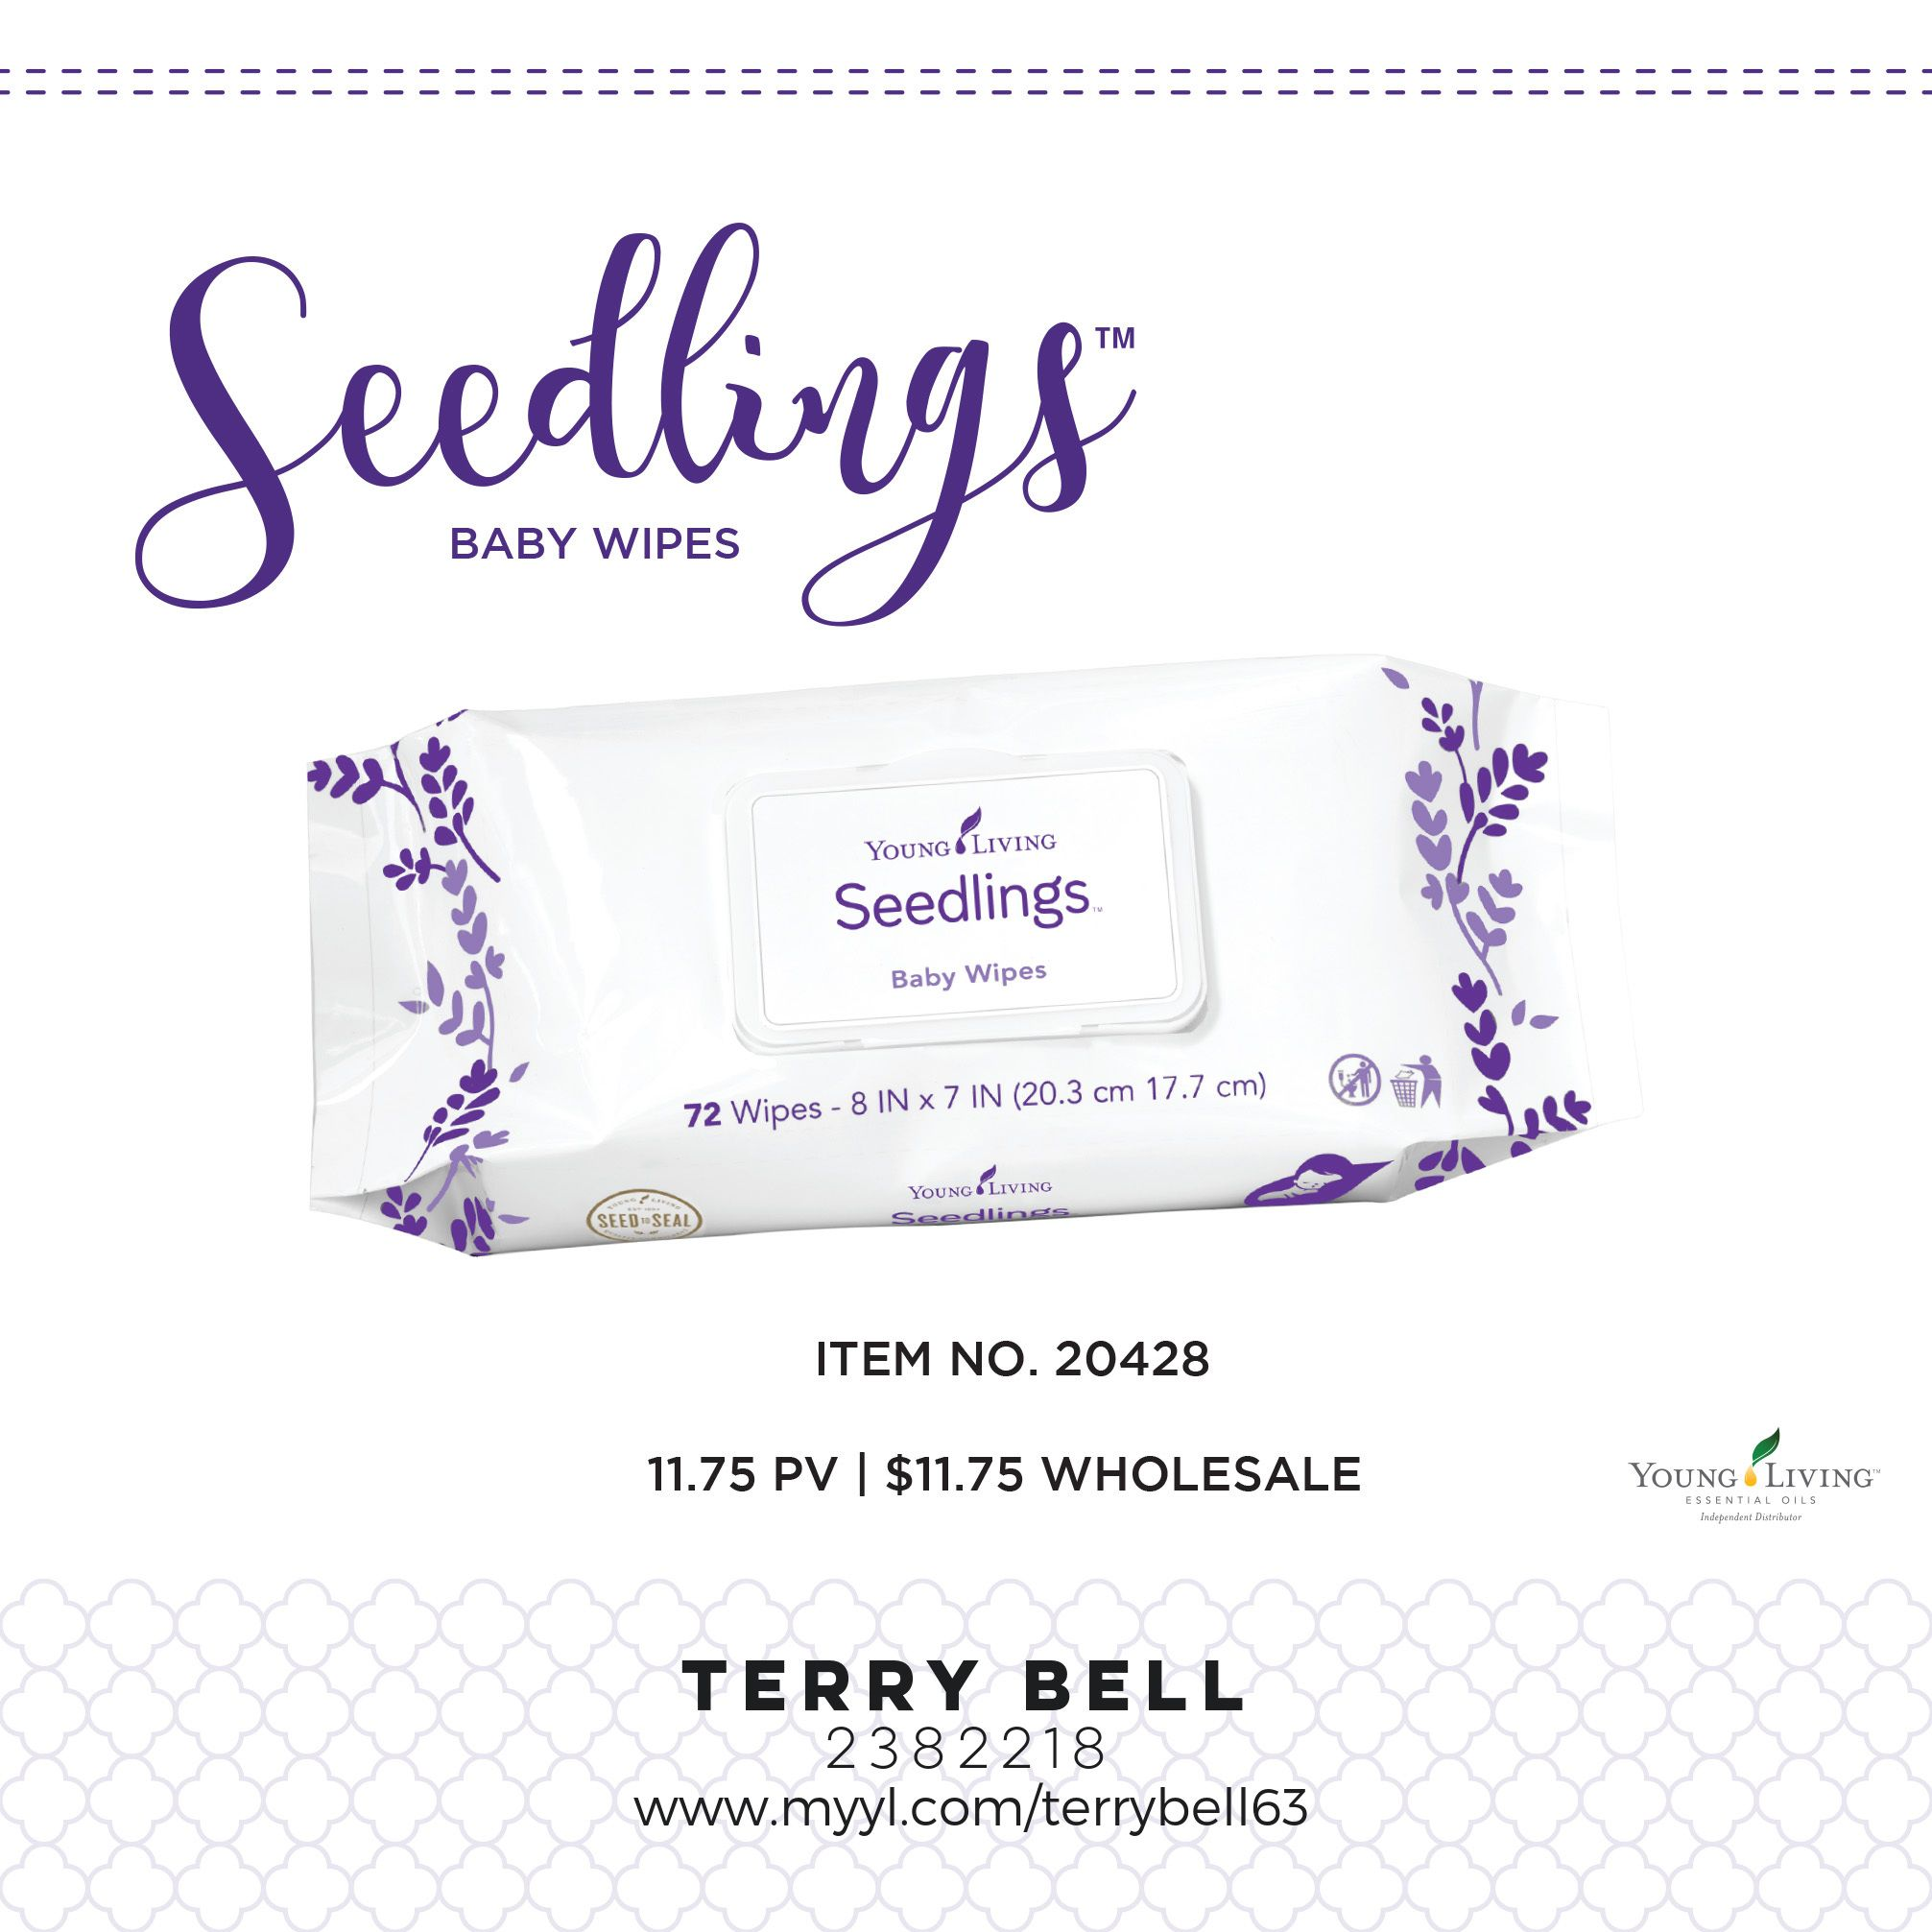 AMAZING baby wipes! Savvy minerals, Baby wipes